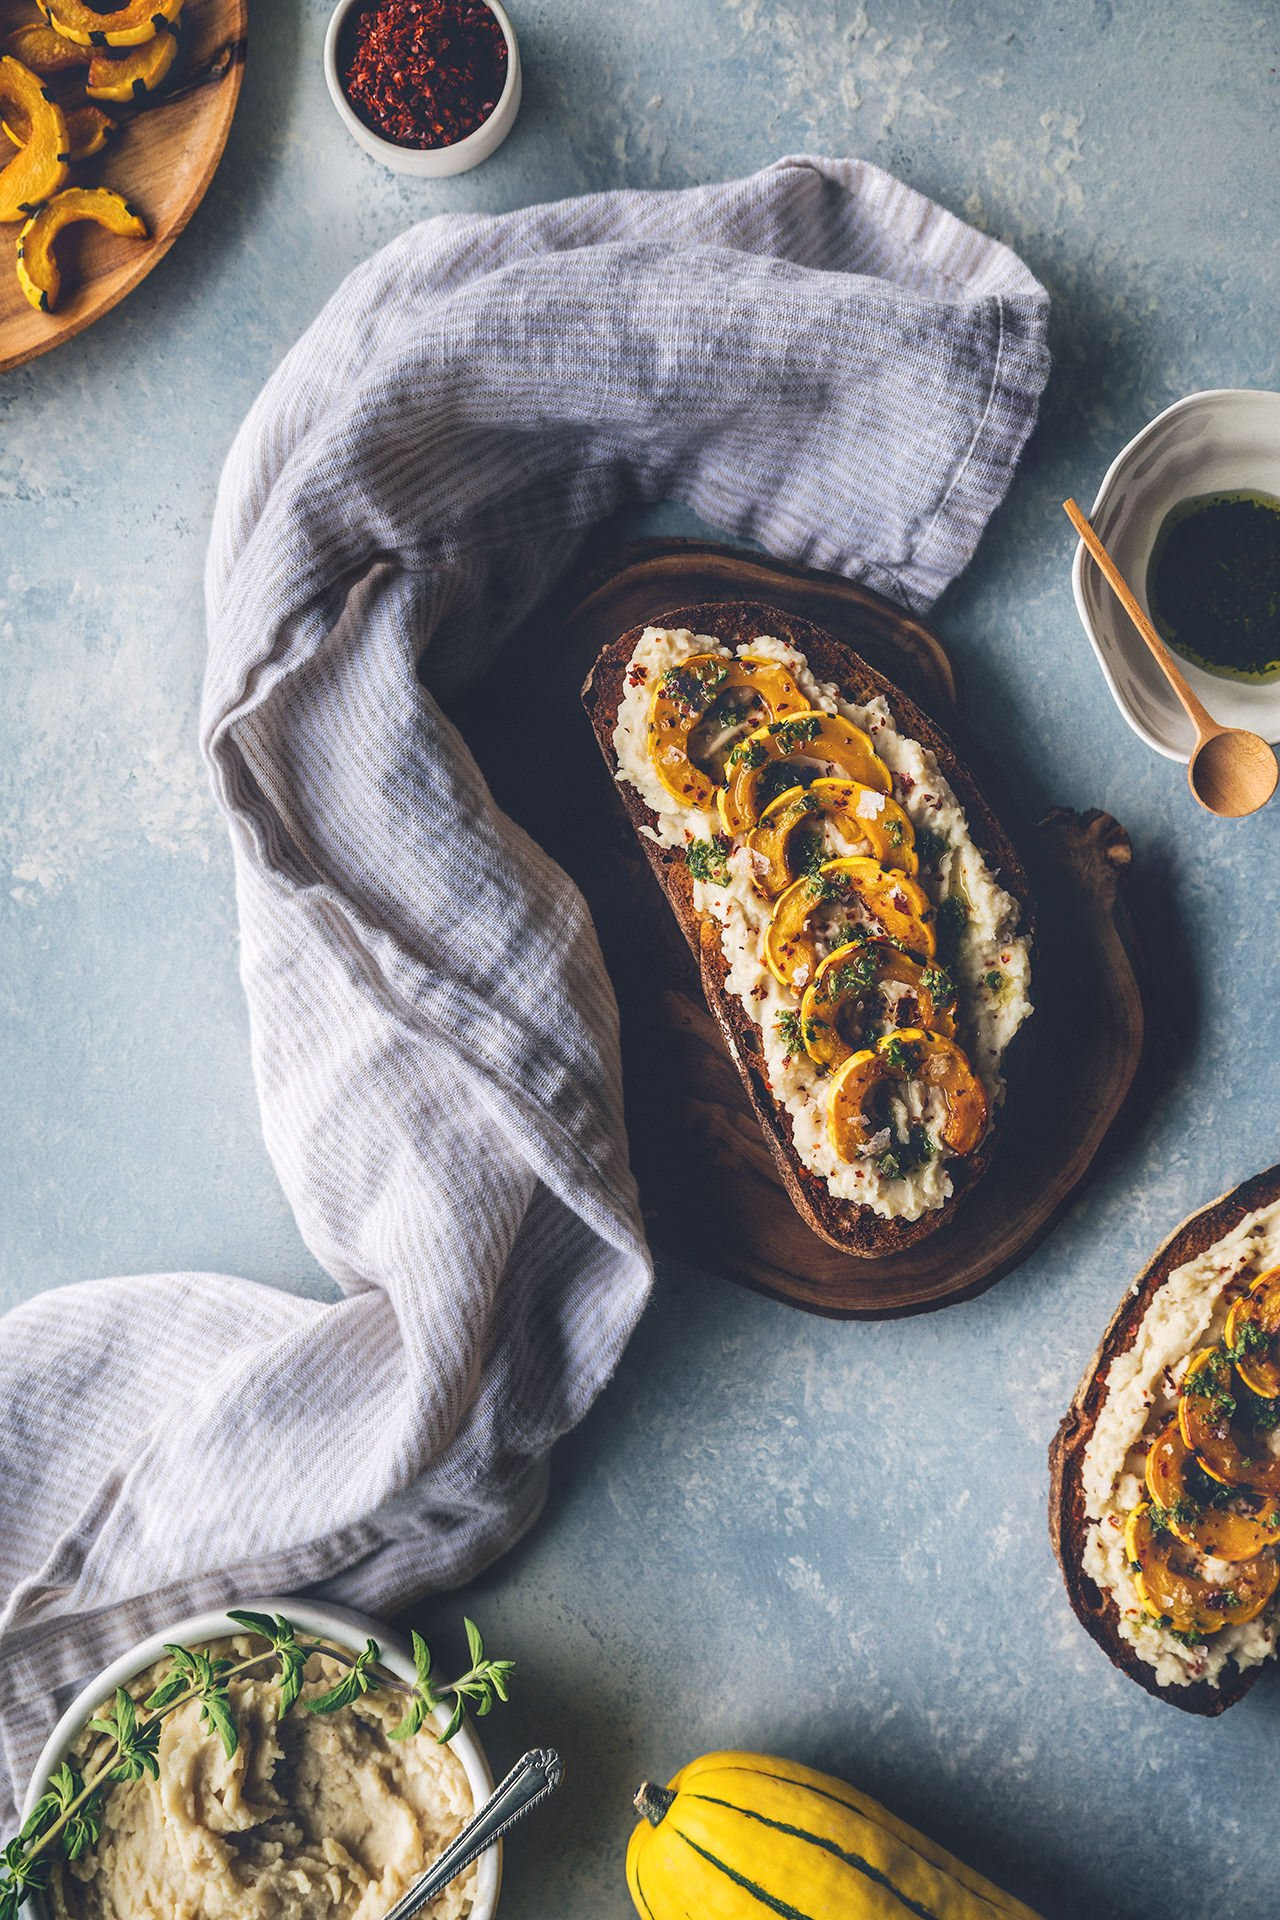 Butter Bean & Roasted Delicata Squash Tartines | HonestlyYUM (honestlyyum.com)